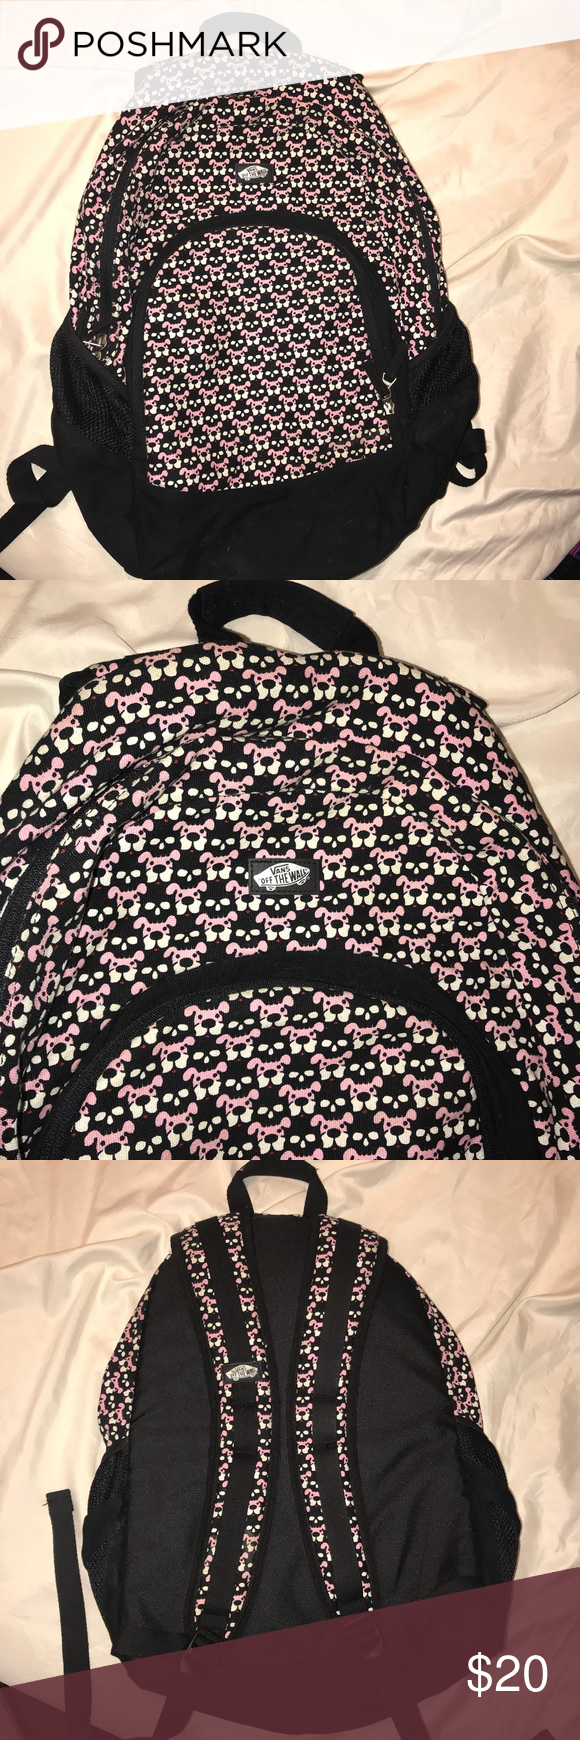 80d3d5d208 Vans Off The Wall Pink puppy Black skull backpack Great condition. No  flaws